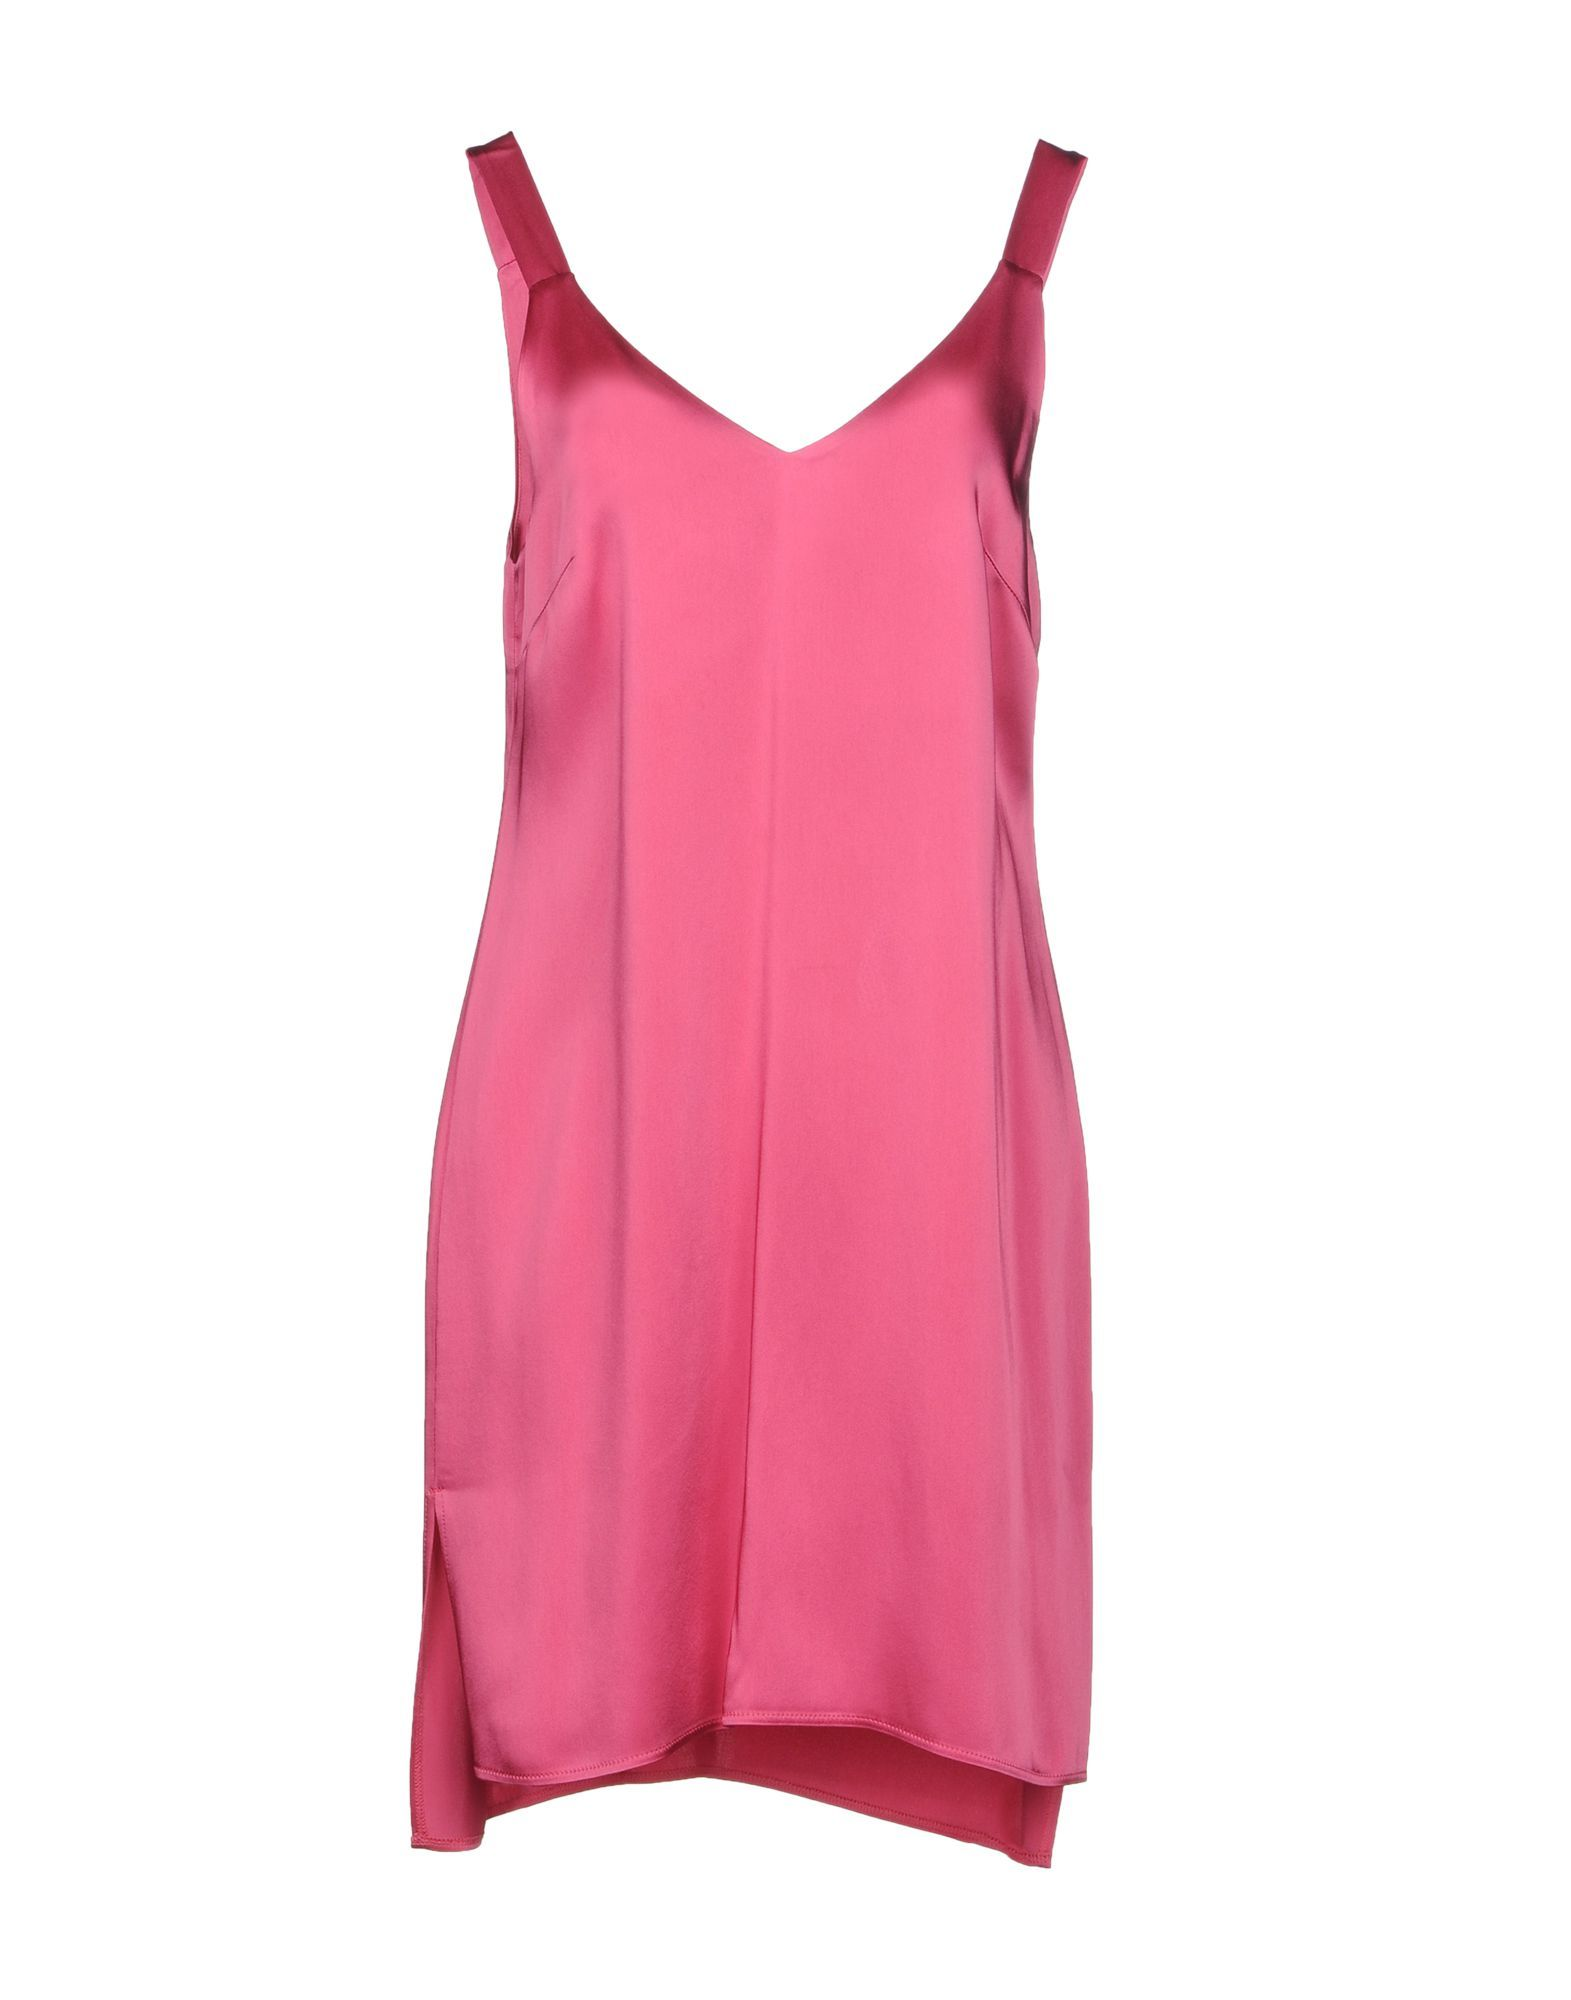 Carla G. Fuchsia Satin Dress